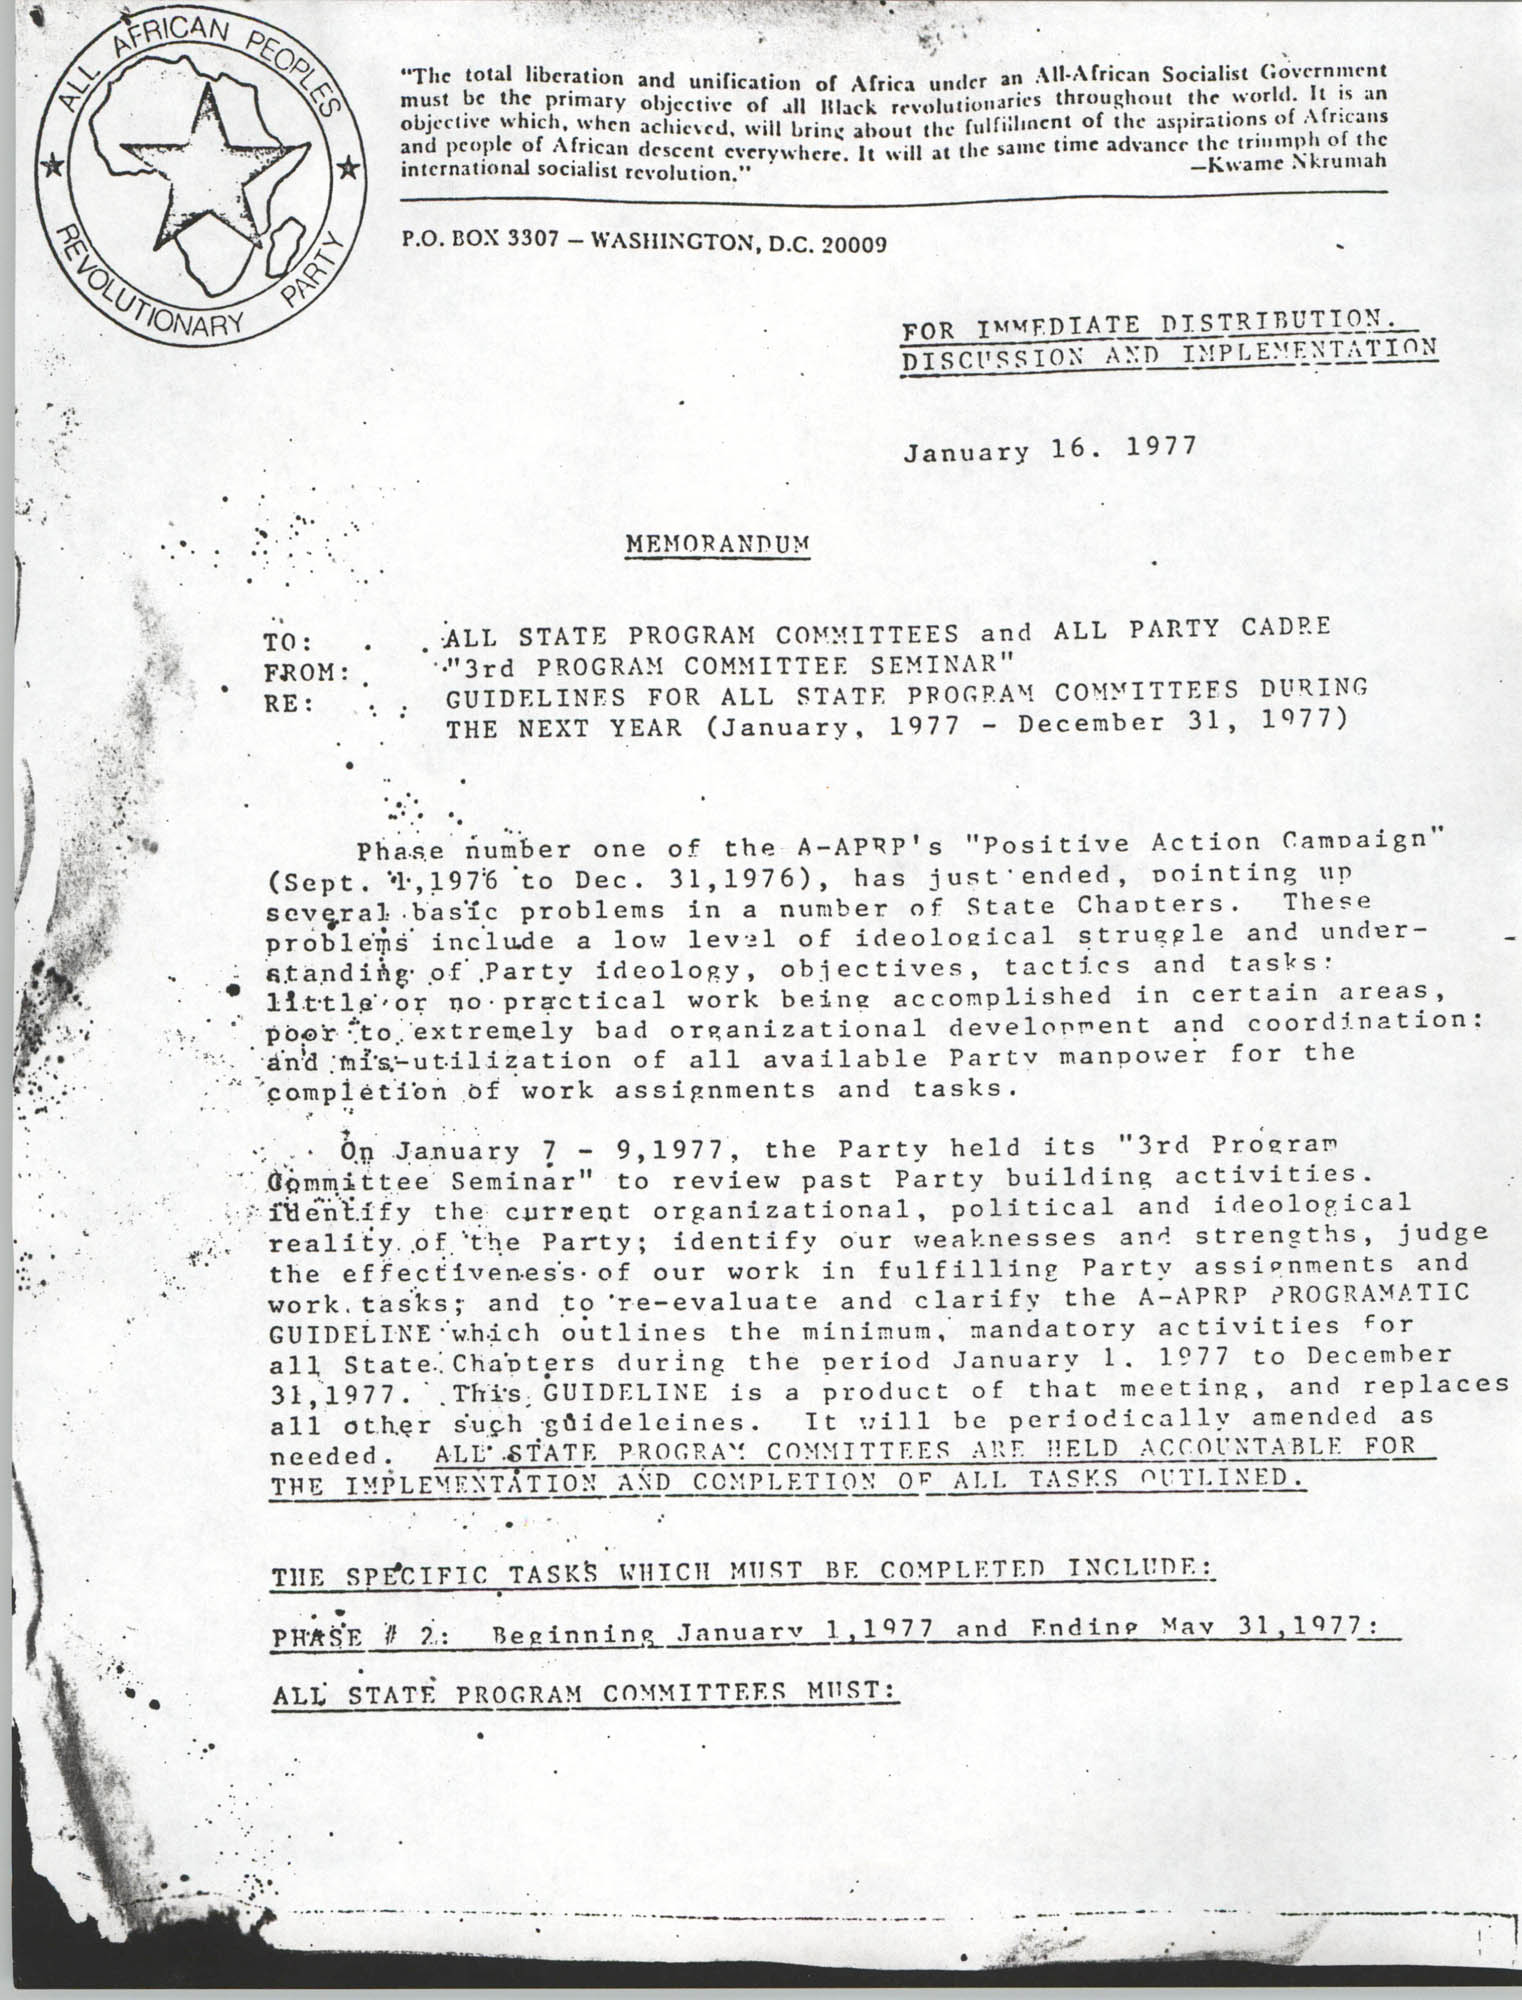 All African People's Revolutionary Party Memorandum, January 16, 1977